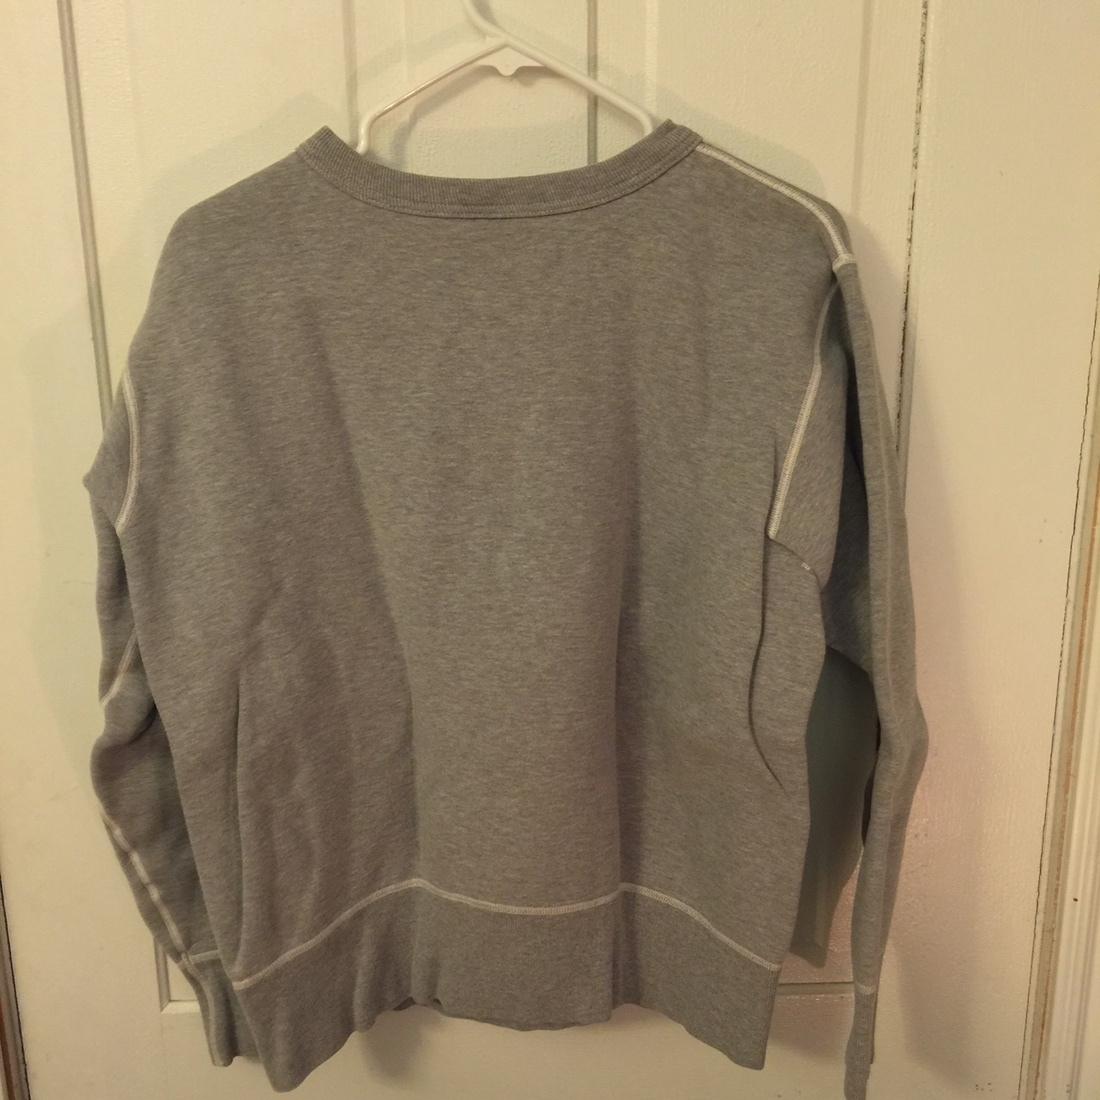 smART's photos in BUZZ RICKSON'S  1930s & '40s Loop-Wheeled, Set-In-Sleeve Sweatshirt, Heather Grey / US L